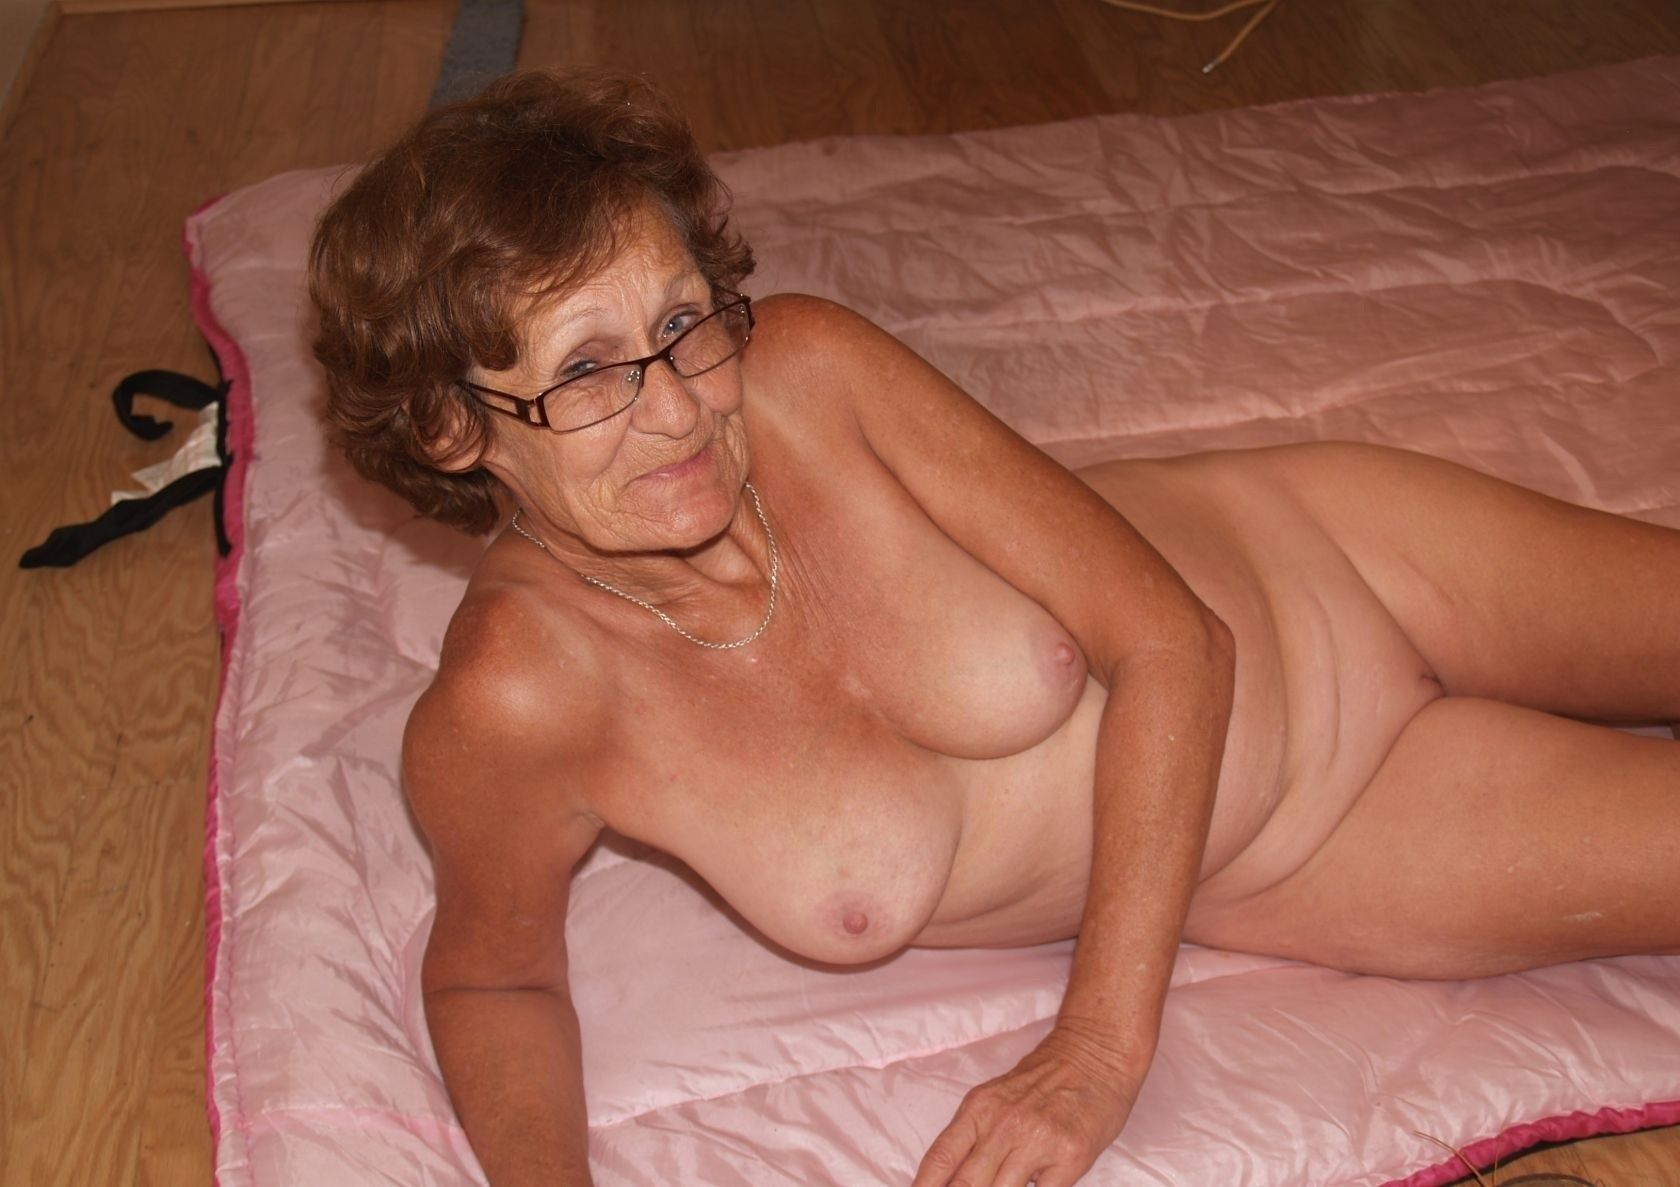 Grandma and girl galleries #8